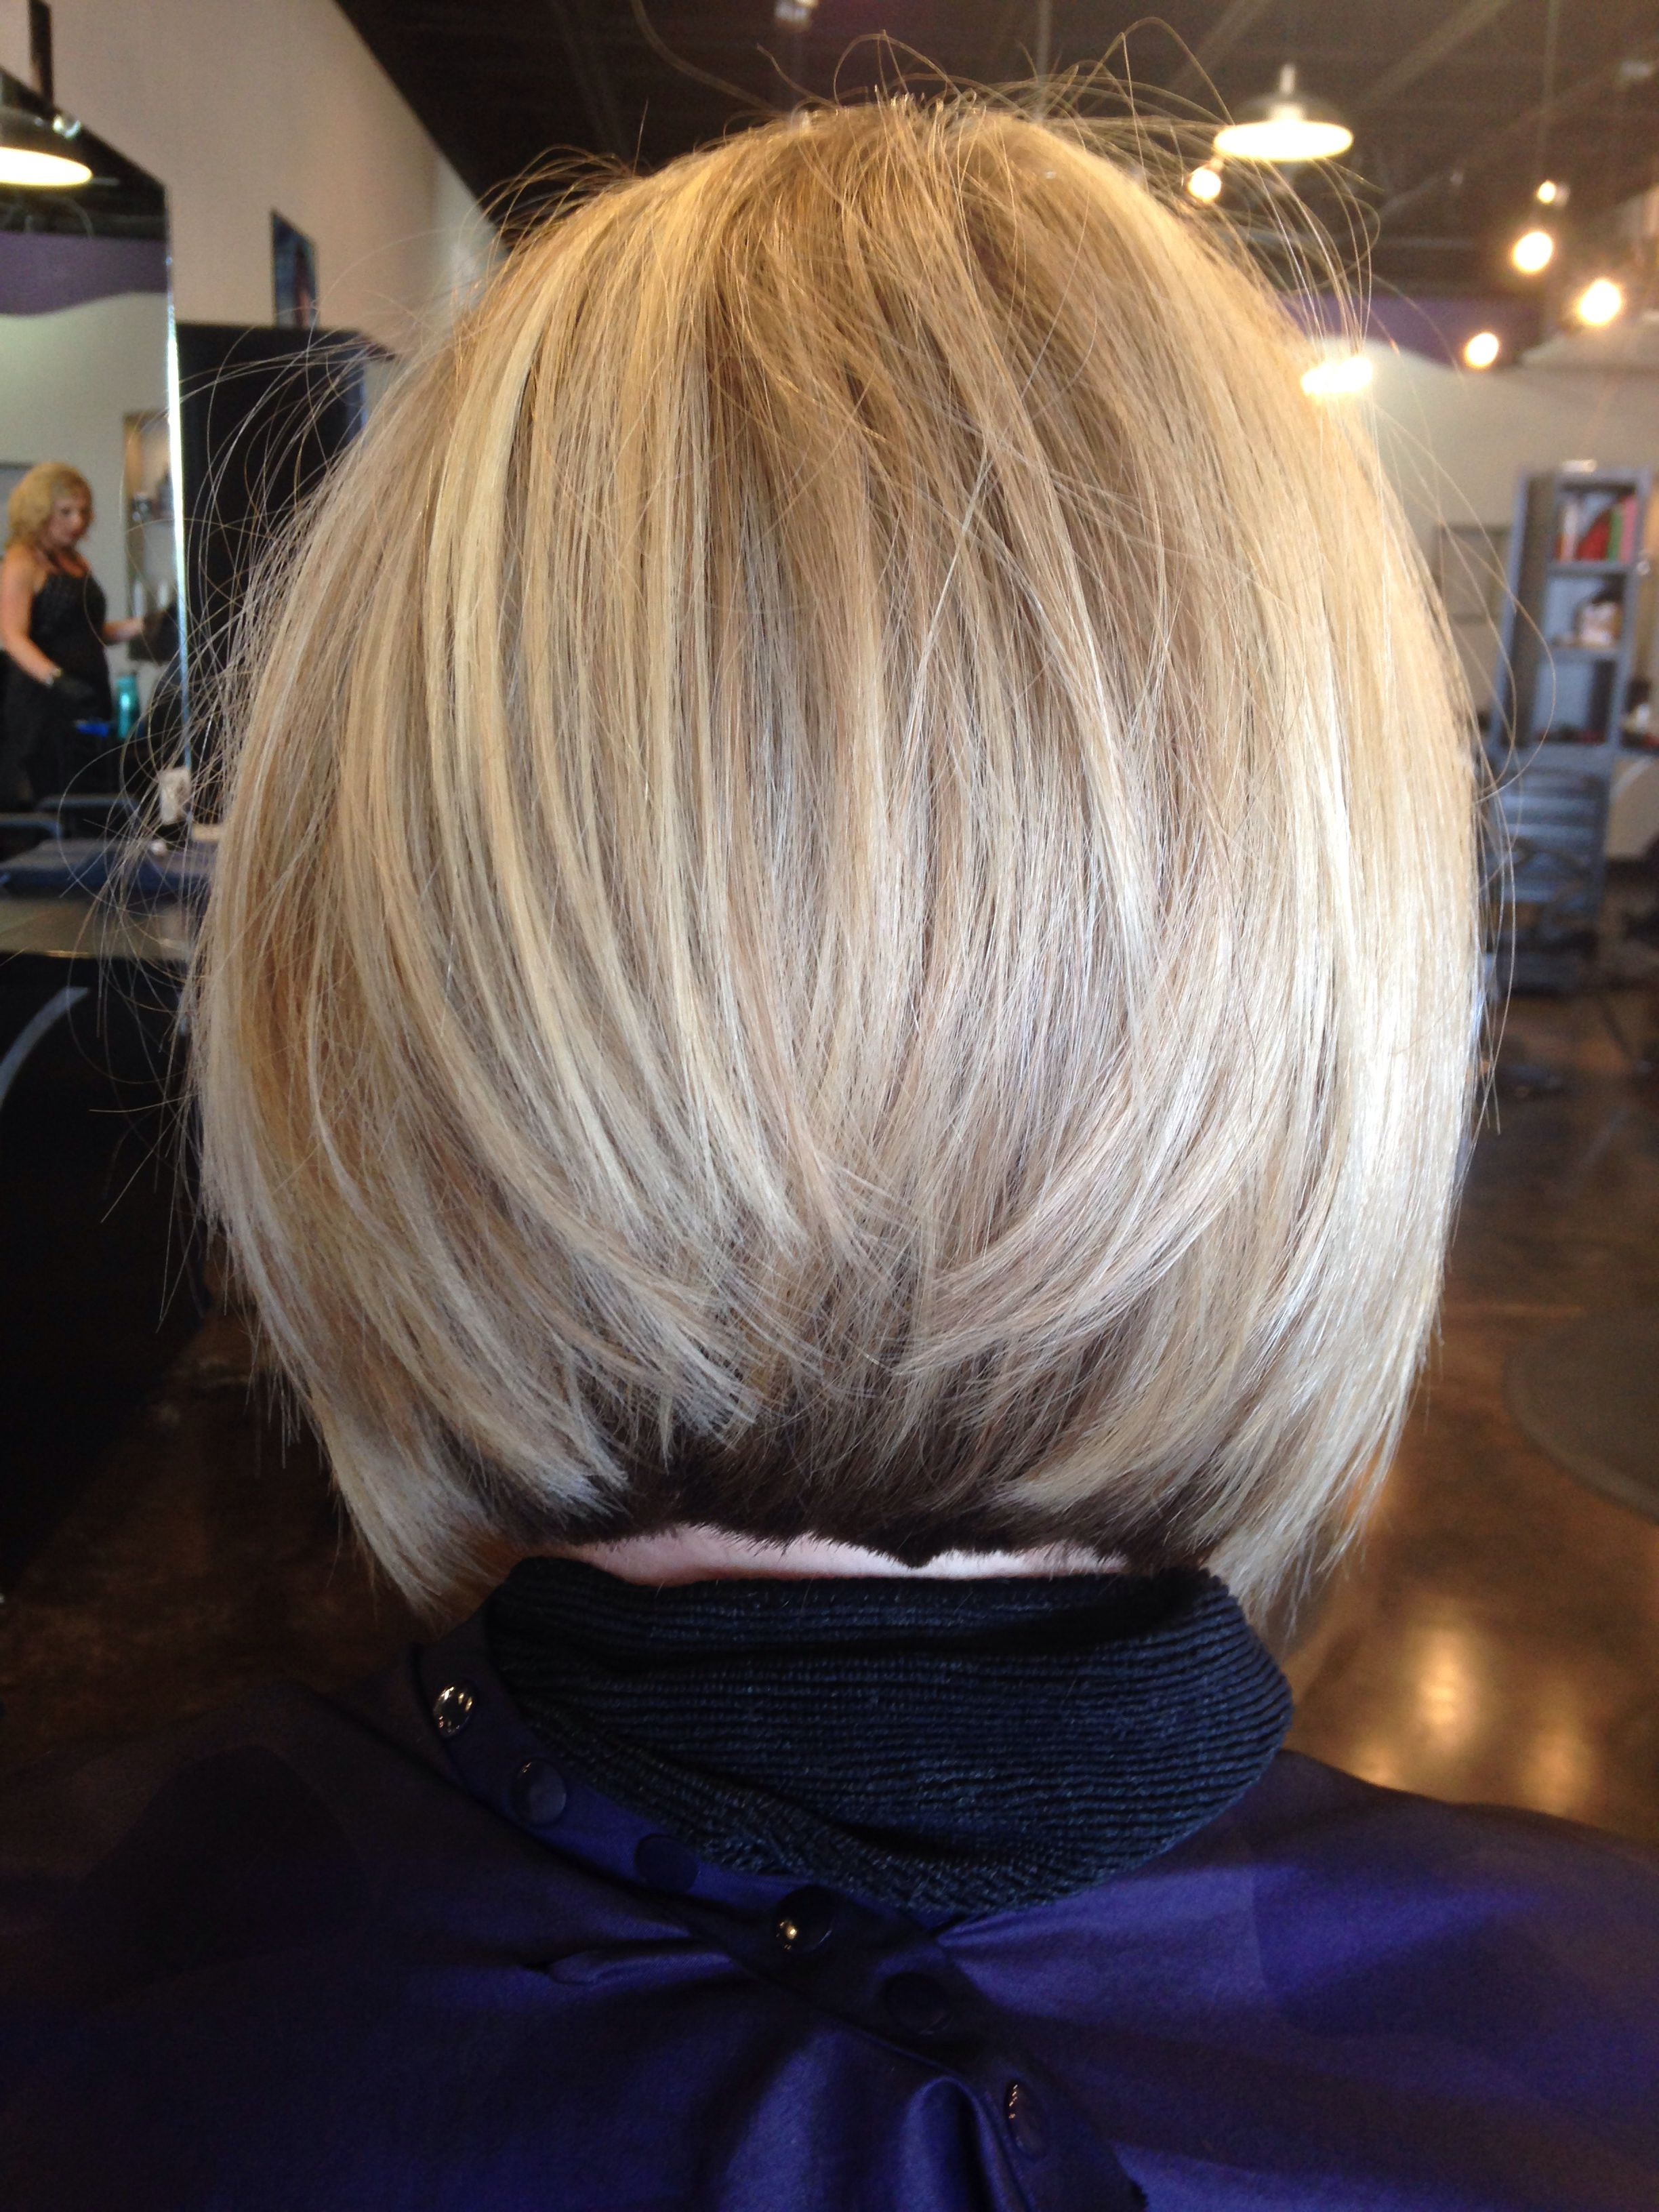 Beige Blonde Stacked Bob | Pin It Like 2 Image | I Love My Hair In With Regard To Short Blonde Inverted Bob Haircuts (View 11 of 20)